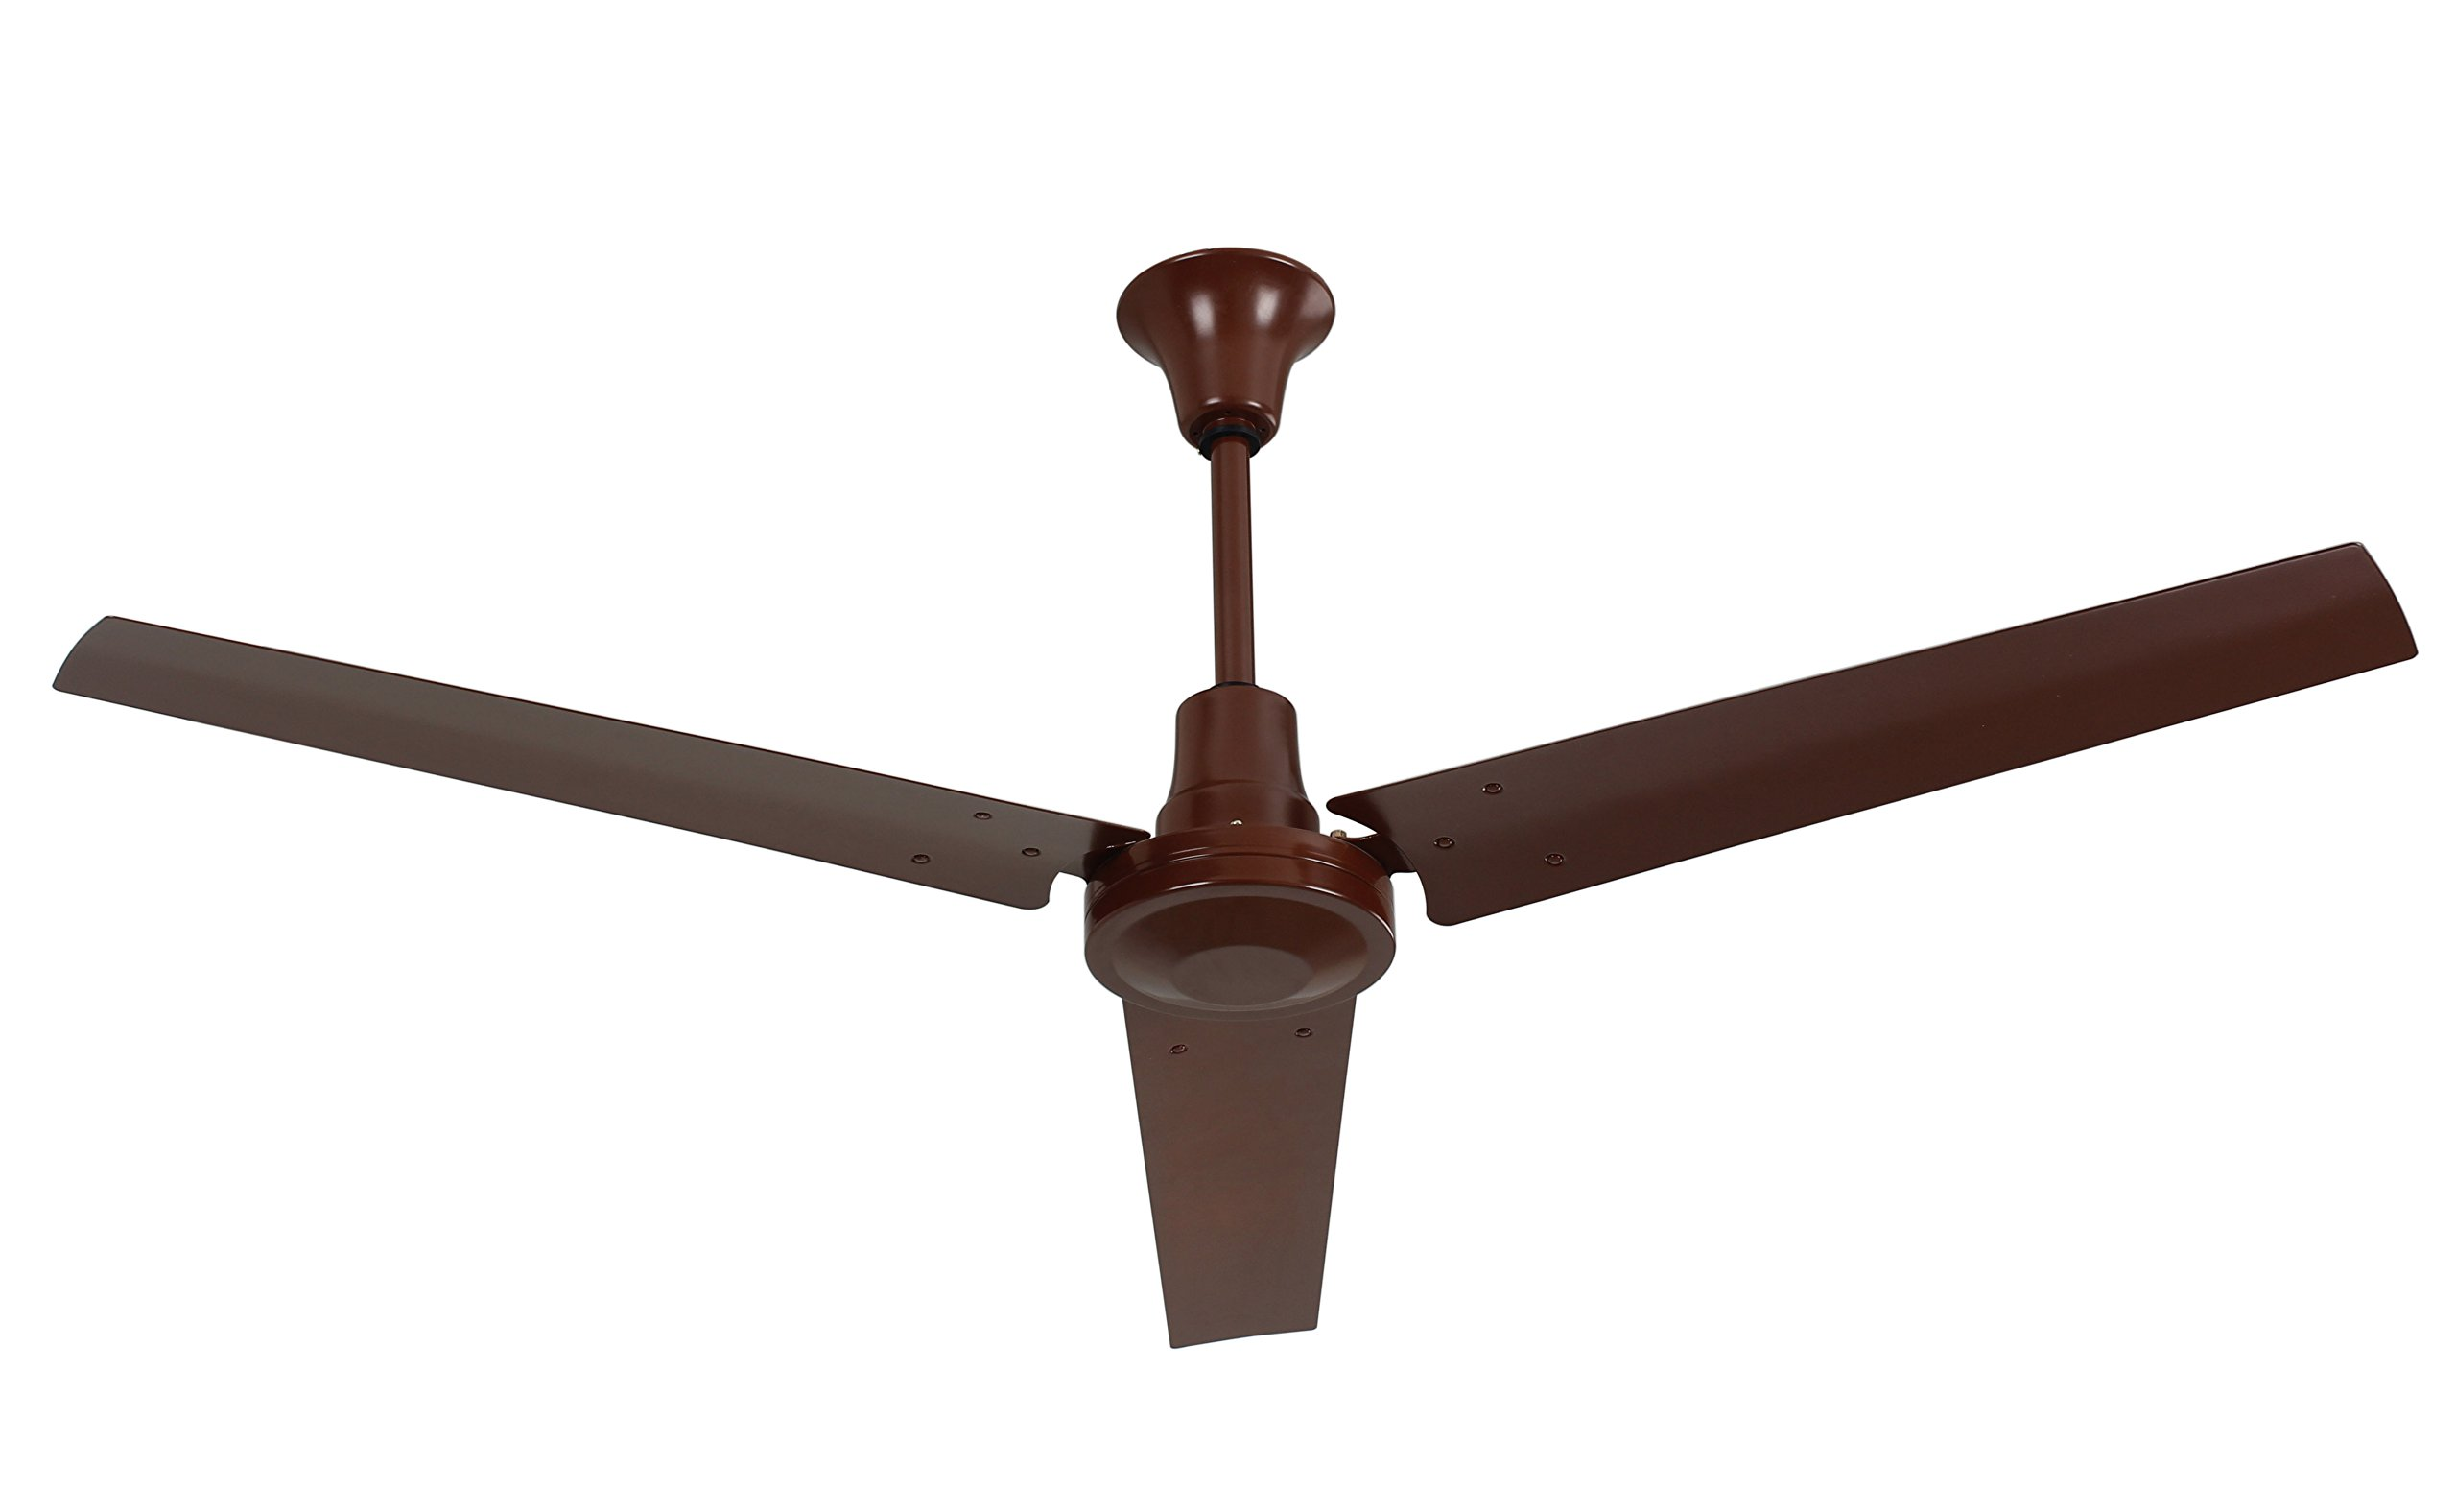 VES Industrial Garage Ceiling Fan with 18-inch Downrod for Indoor (60 Inch, Brown)